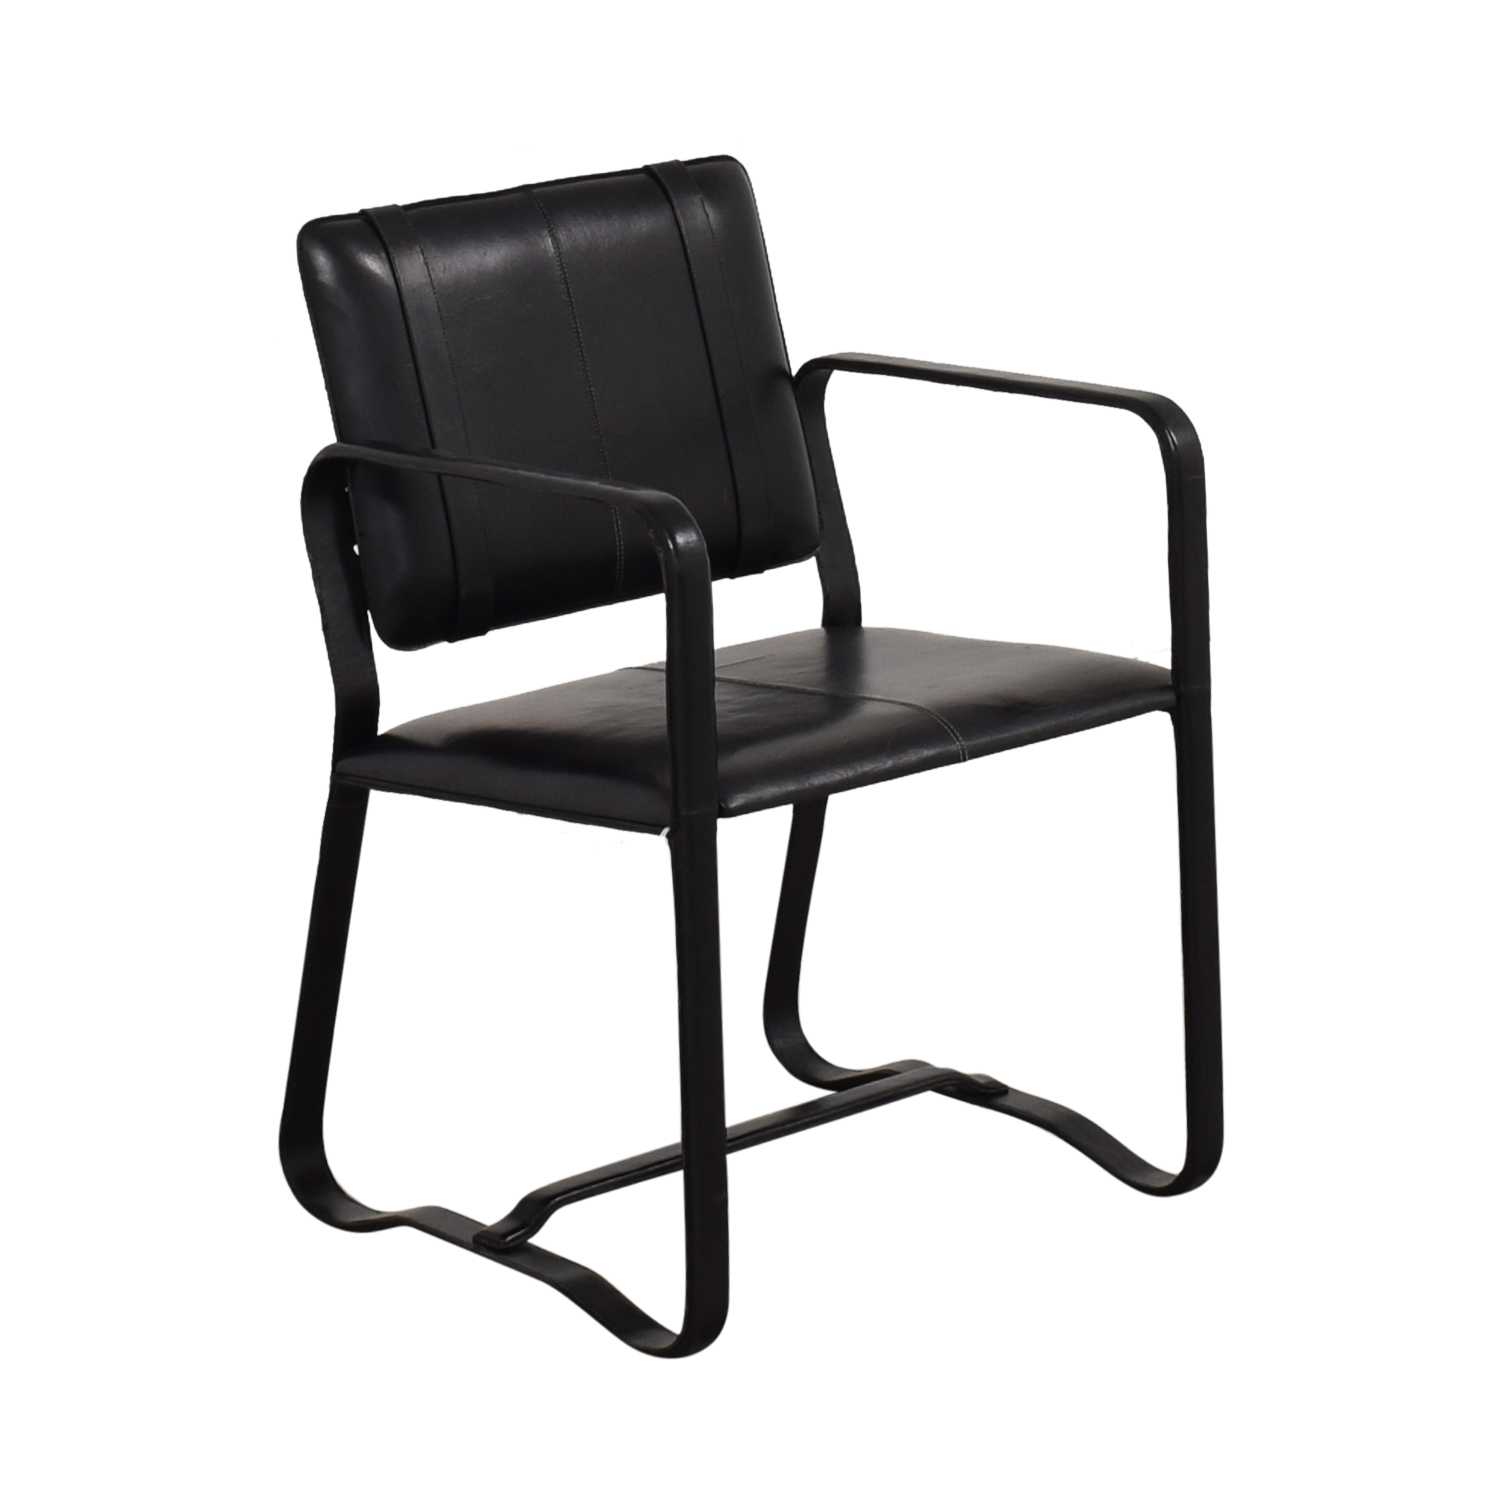 Restoration Hardware Restoration Hardware Lounge Chair used